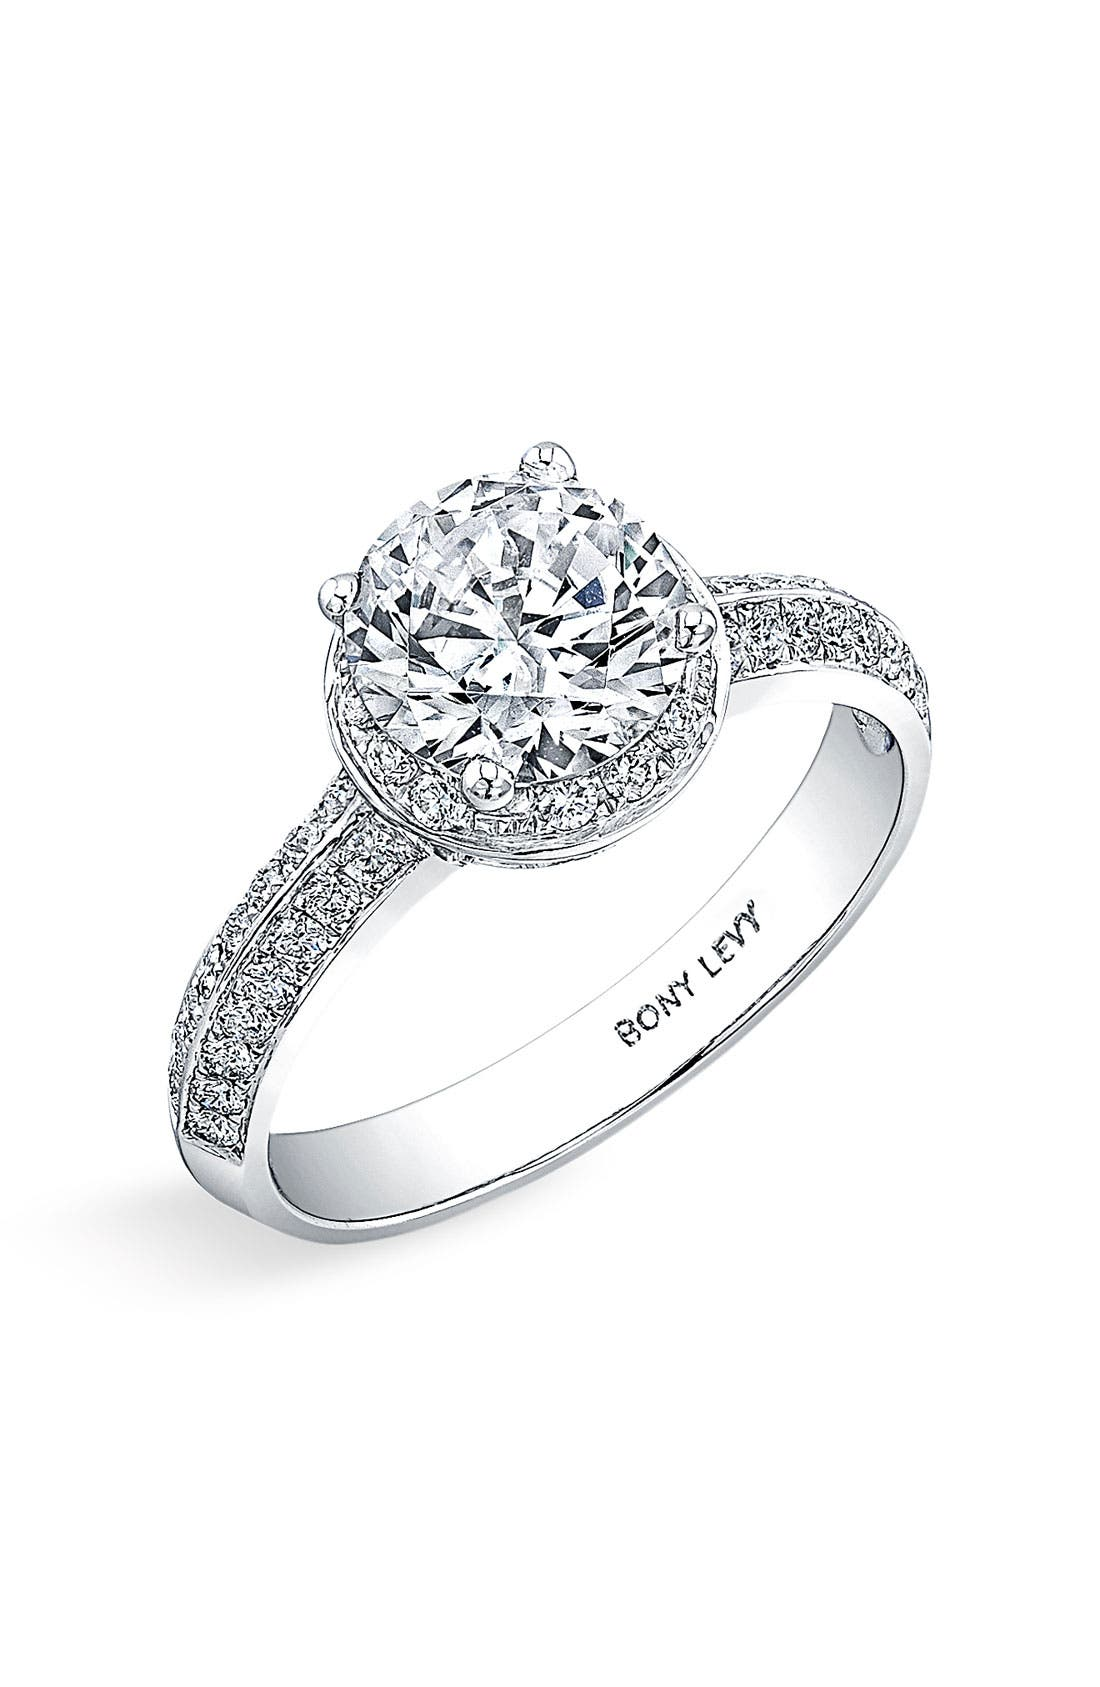 Main Image - Bony Levy Pavé Diamond Engagement Ring Setting (Nordstrom Exclusive)